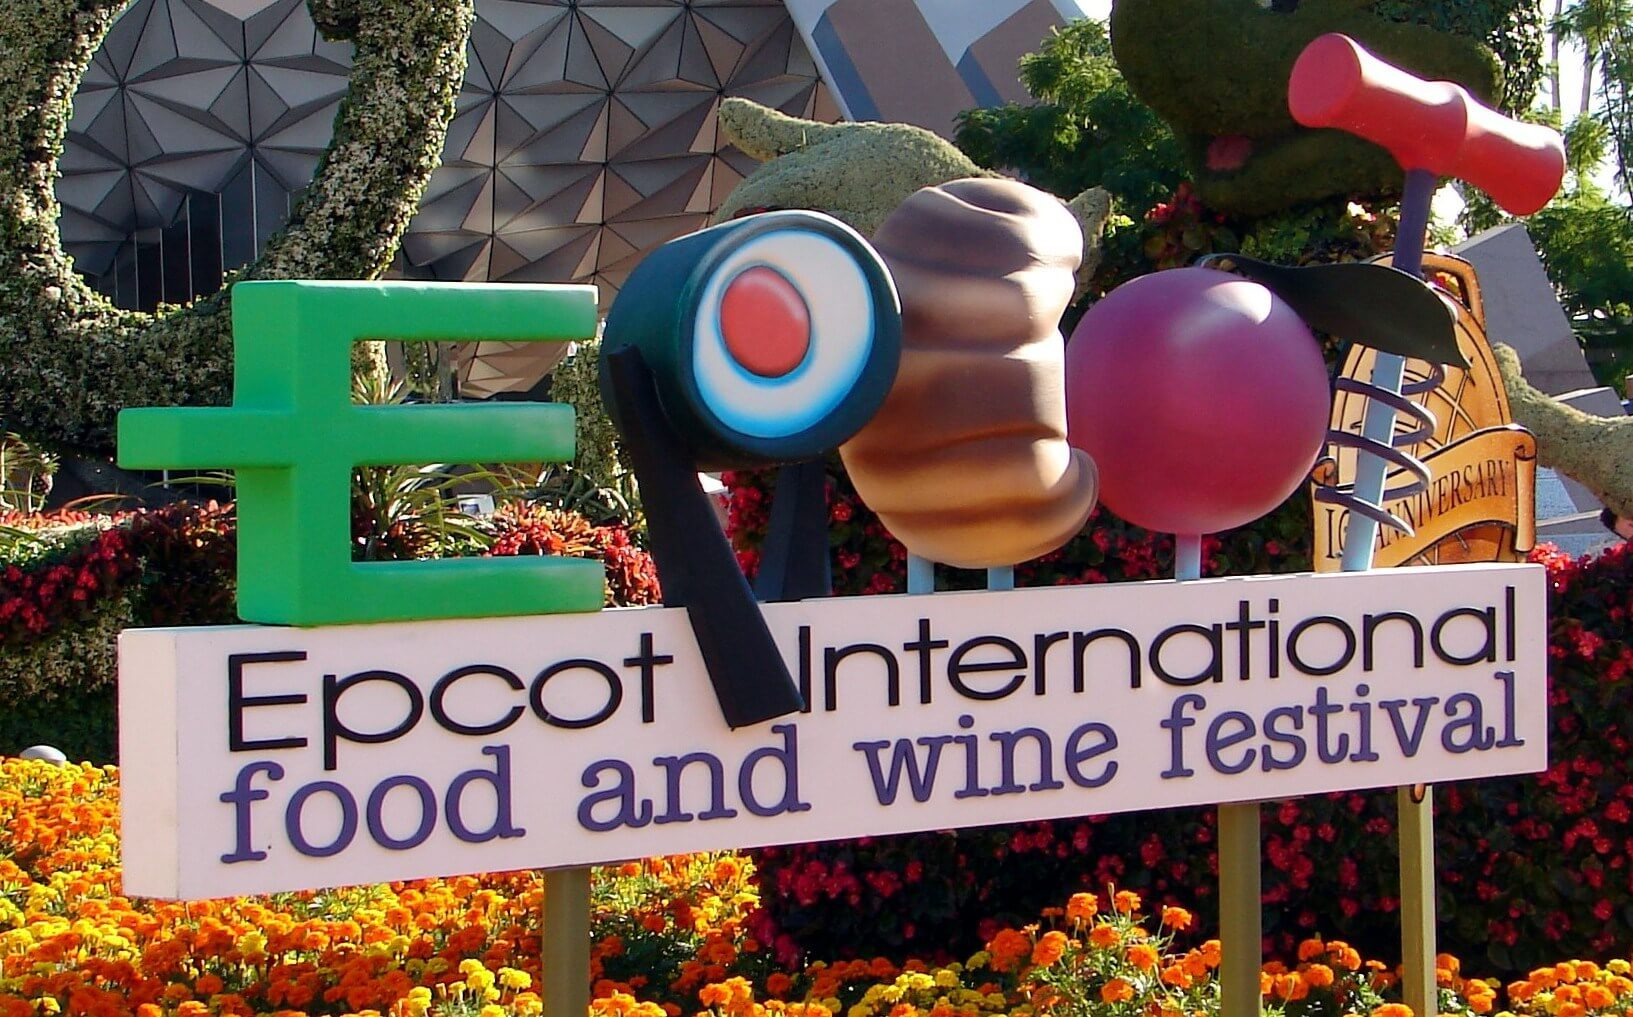 Celebrate the 2017 Epcot Food & Wine Festival!